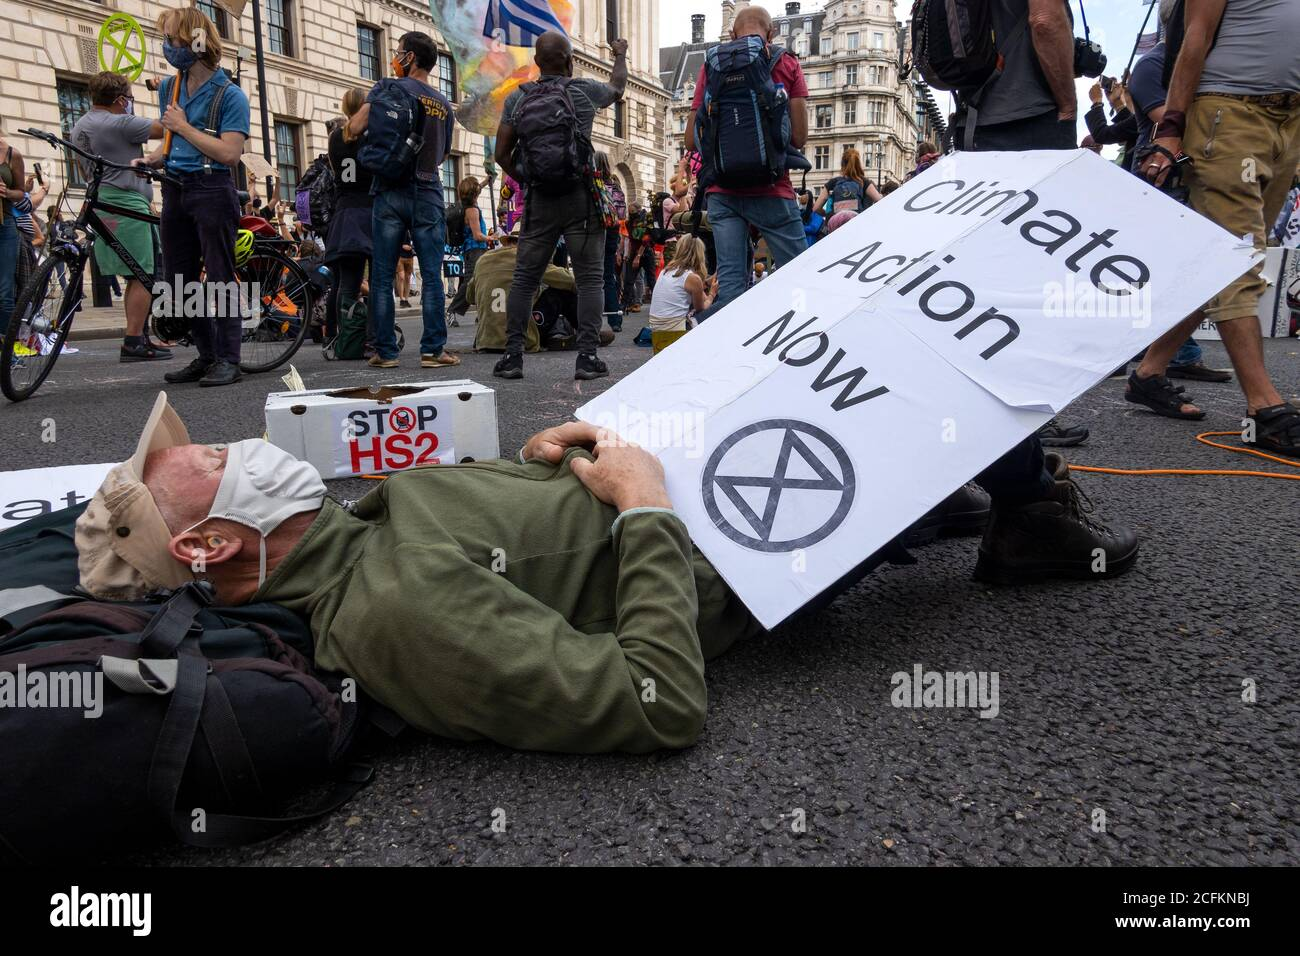 westminster-london-uk-1st-september-2020-rebellion-extinction-london-protest-first-of-10-days-of-planned-climate-change-actions-earlier-xr-protestors-had-marched-with-placards-and-banners-from-trafalgar-square-and-occupied-parliament-square-and-the-roads-encircling-it-protestors-were-calling-on-parliament-to-back-the-climate-and-ecological-emergency-bill-cee-bill-as-time-progressed-the-metropolitan-police-made-arrests-clearing-the-area-in-front-of-parliament-and-some-protesters-started-to-leave-multiple-protests-were-planned-to-take-place-around-the-uk-credit-stephen-bellalamy-2CFKNBJ.jpg